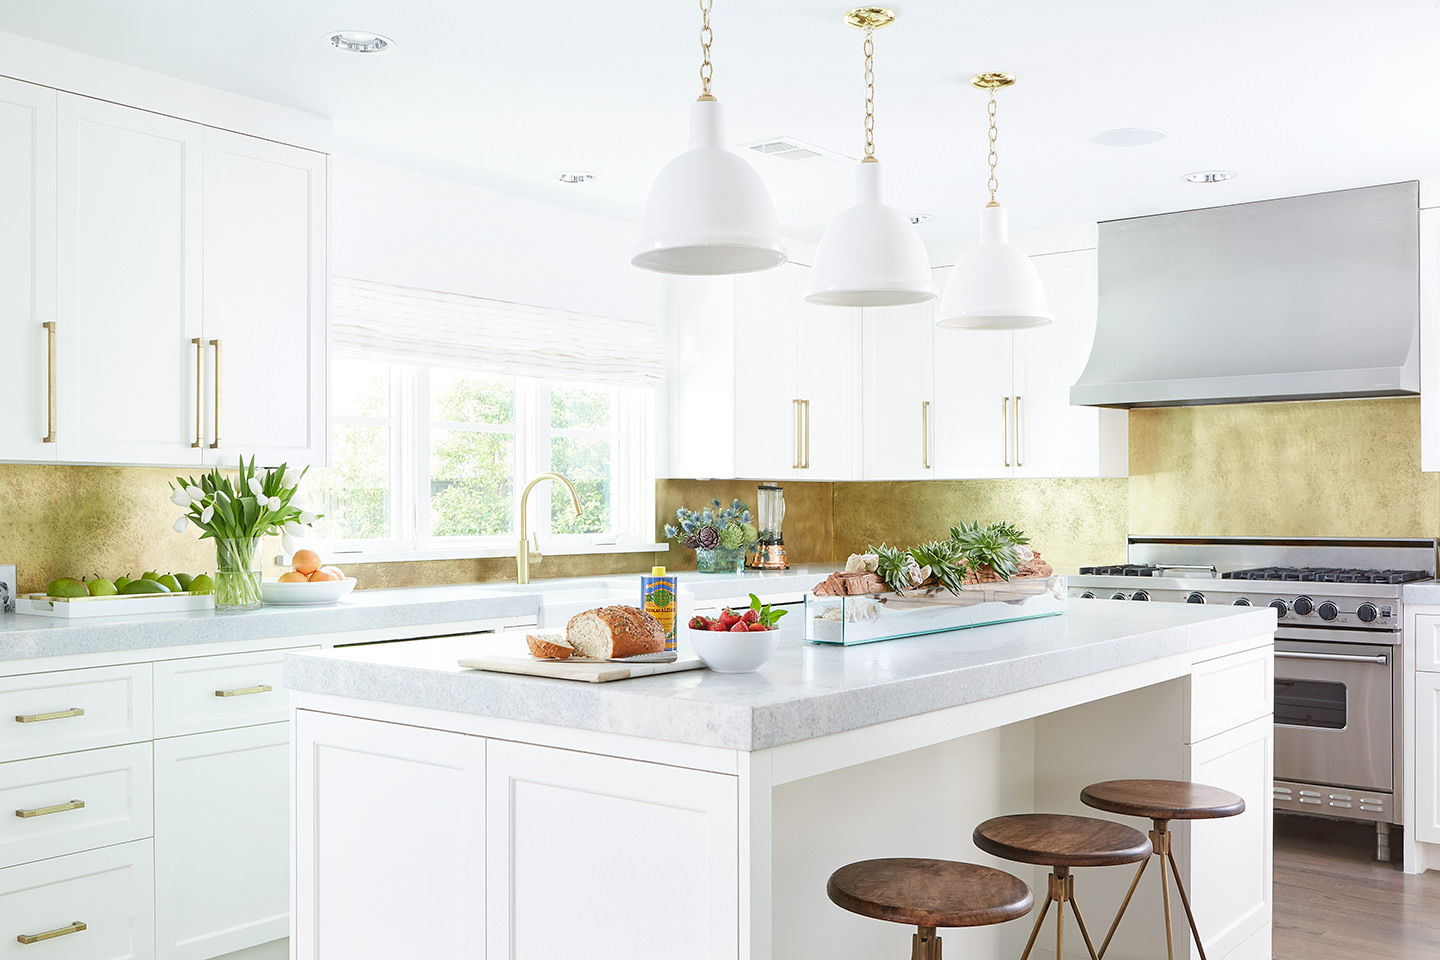 austin_interior_design_brass_kitchen.jpg